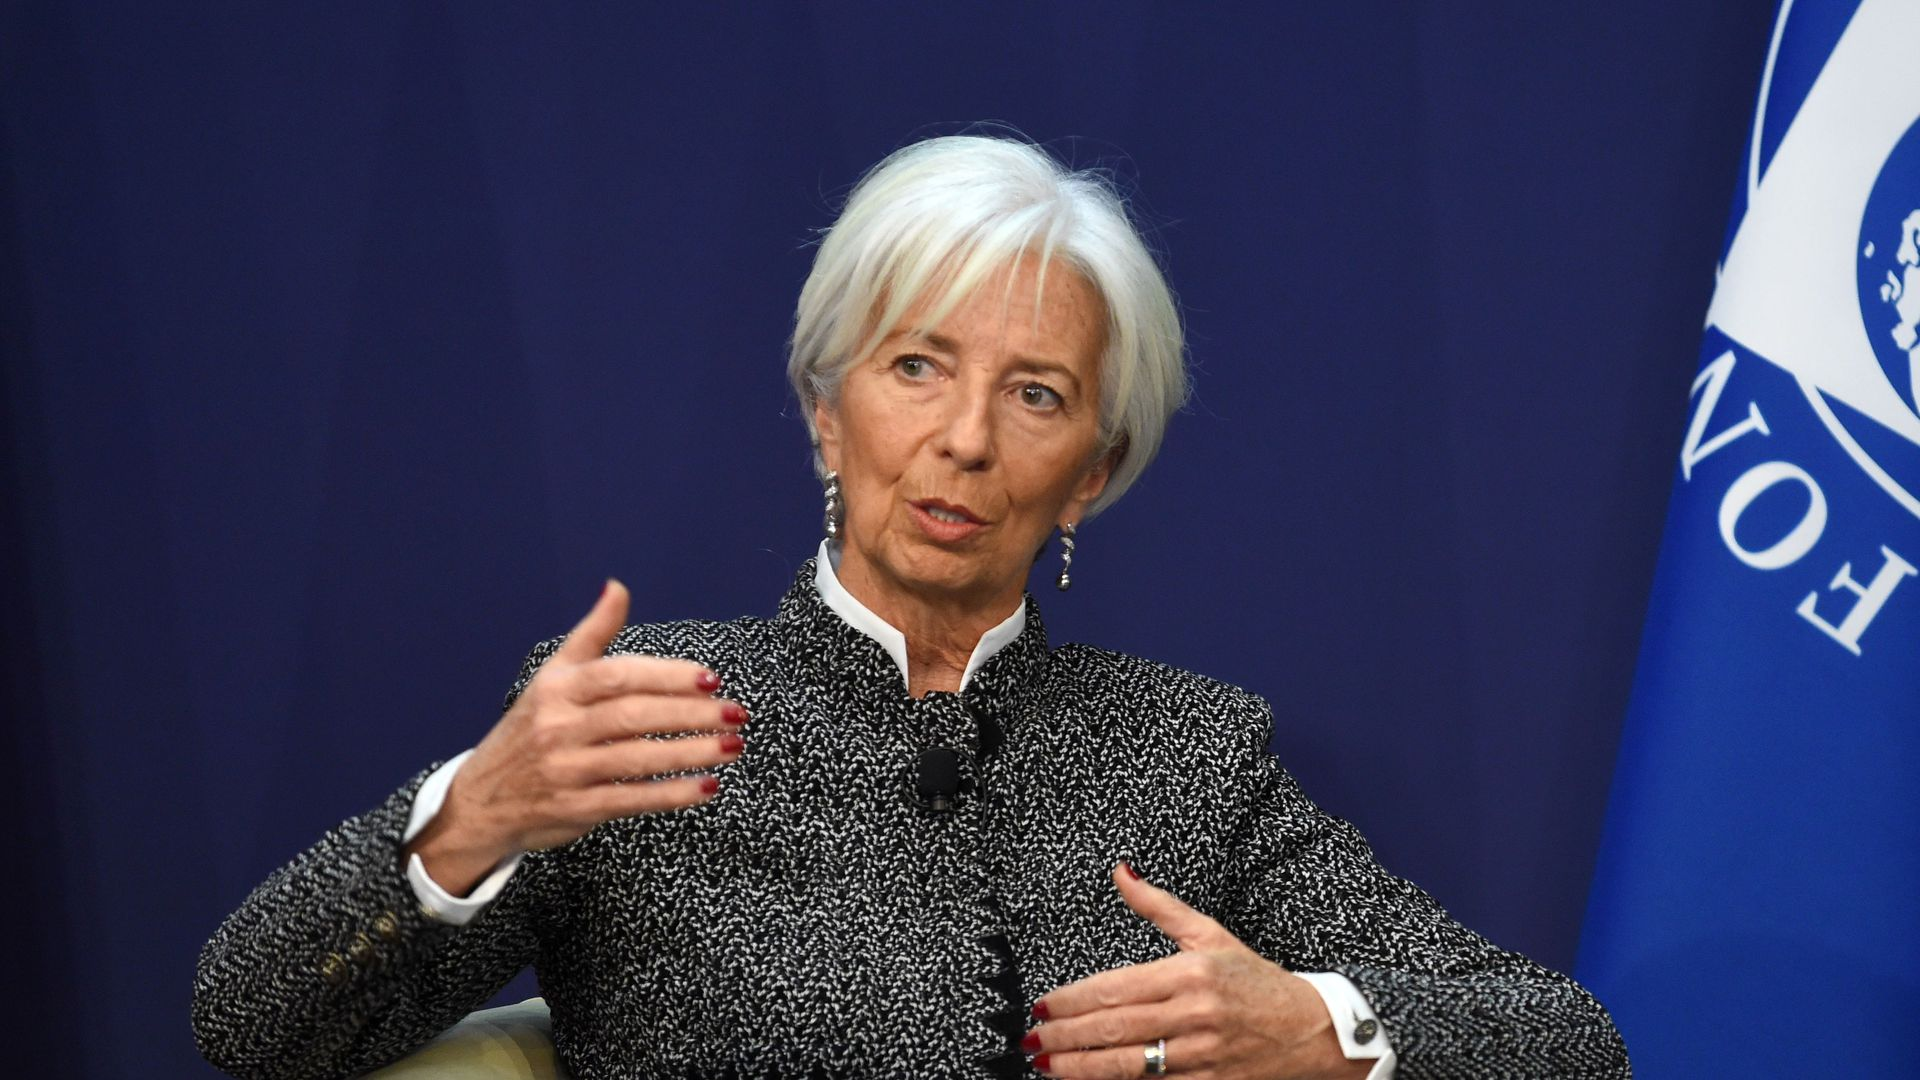 IMF Chief | Christine Lagarde | Crypto Assets | Cryptocurrency News